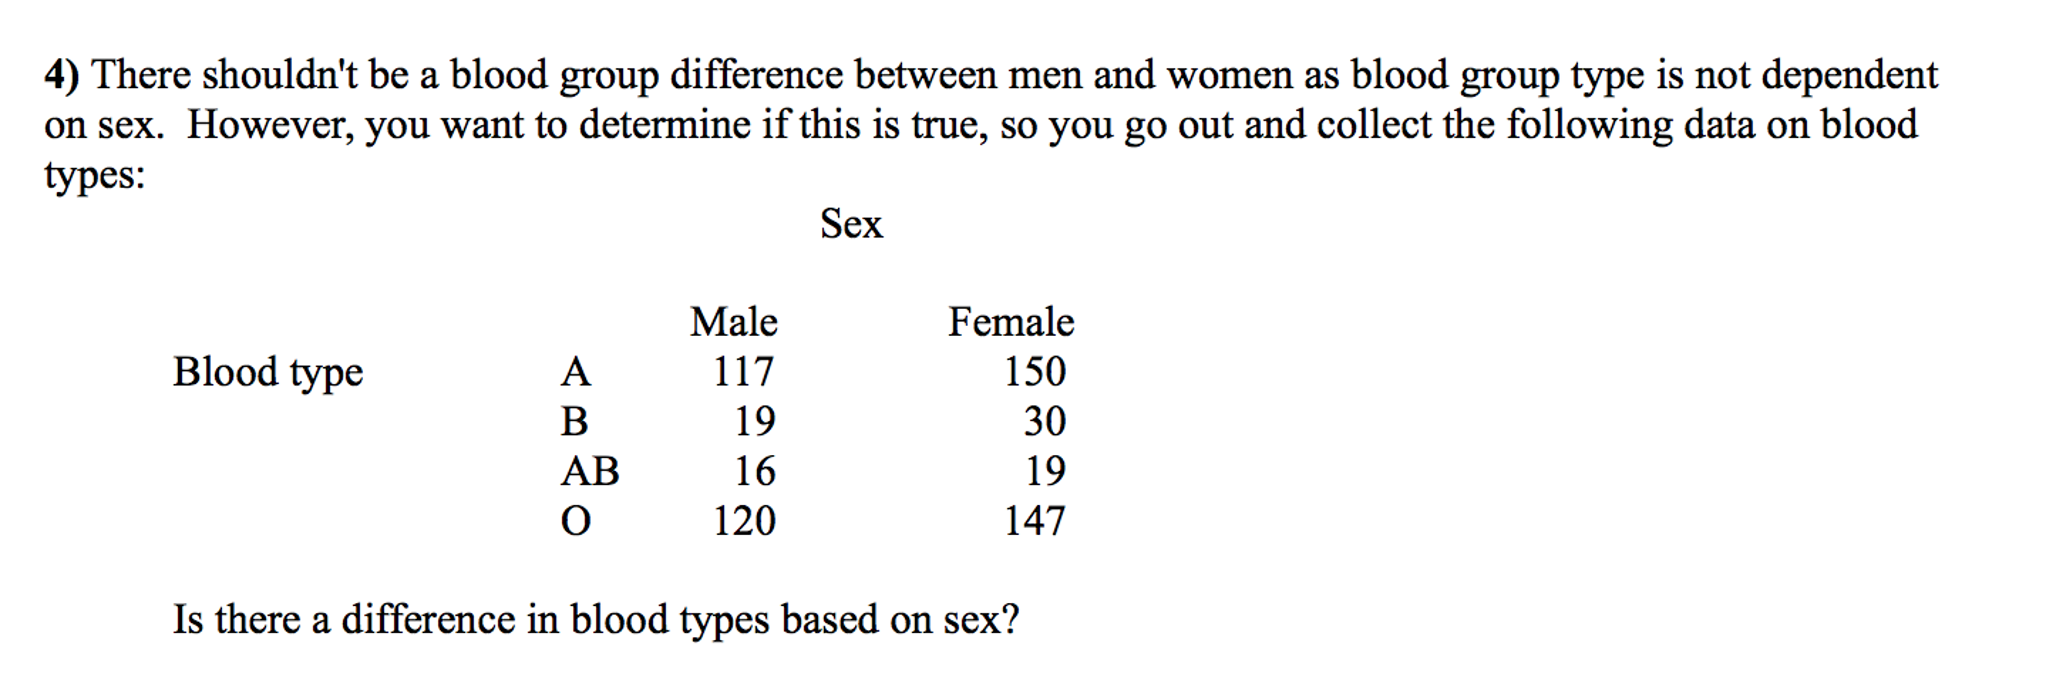 biological differences between men and women During his course on 'heritage and environment' at the leading academic institution, hesslow cited empirical research which supports the idea that there are differences between men and women which are biologically founded and therefore genders cannot be regarded as social constructs alone.